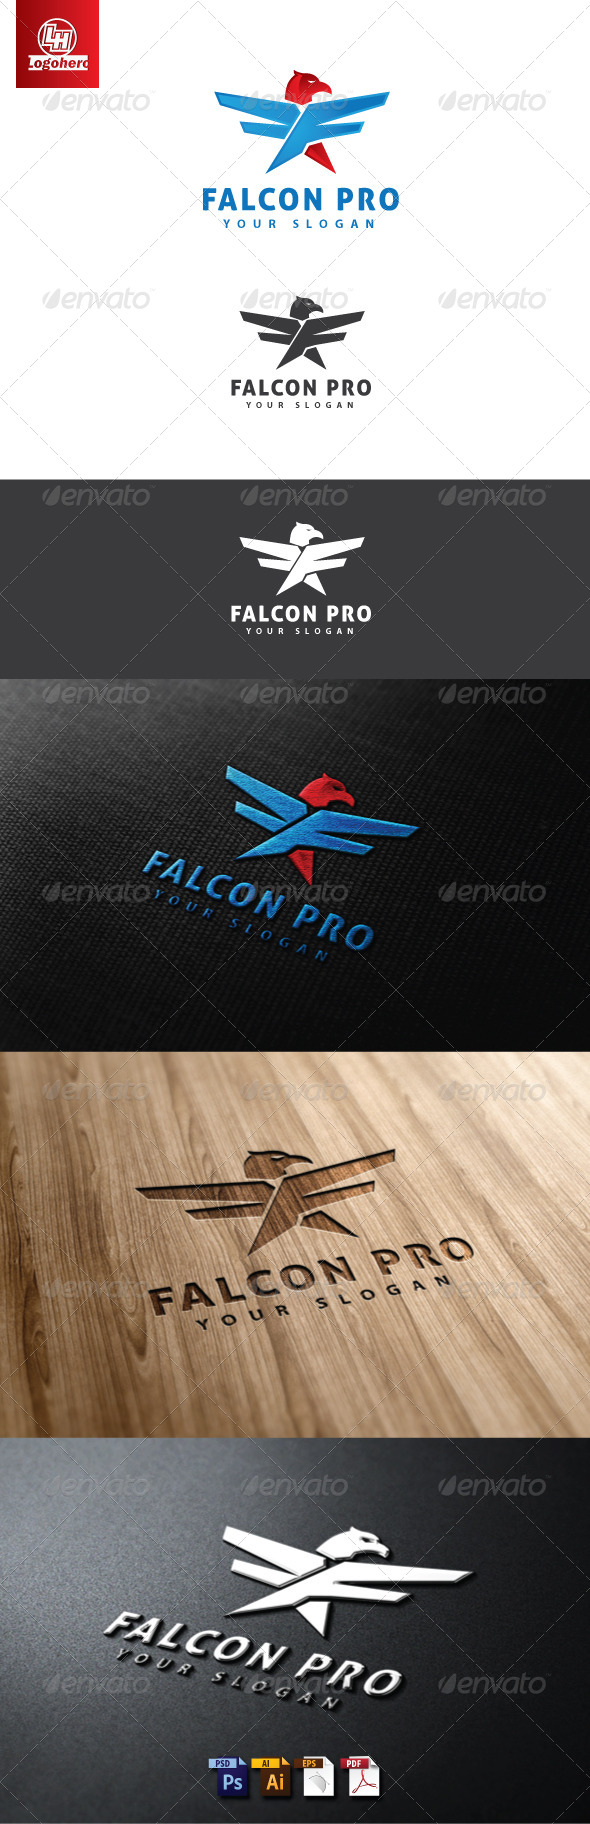 GraphicRiver Falcon Pro Logo Template.zip 4660658